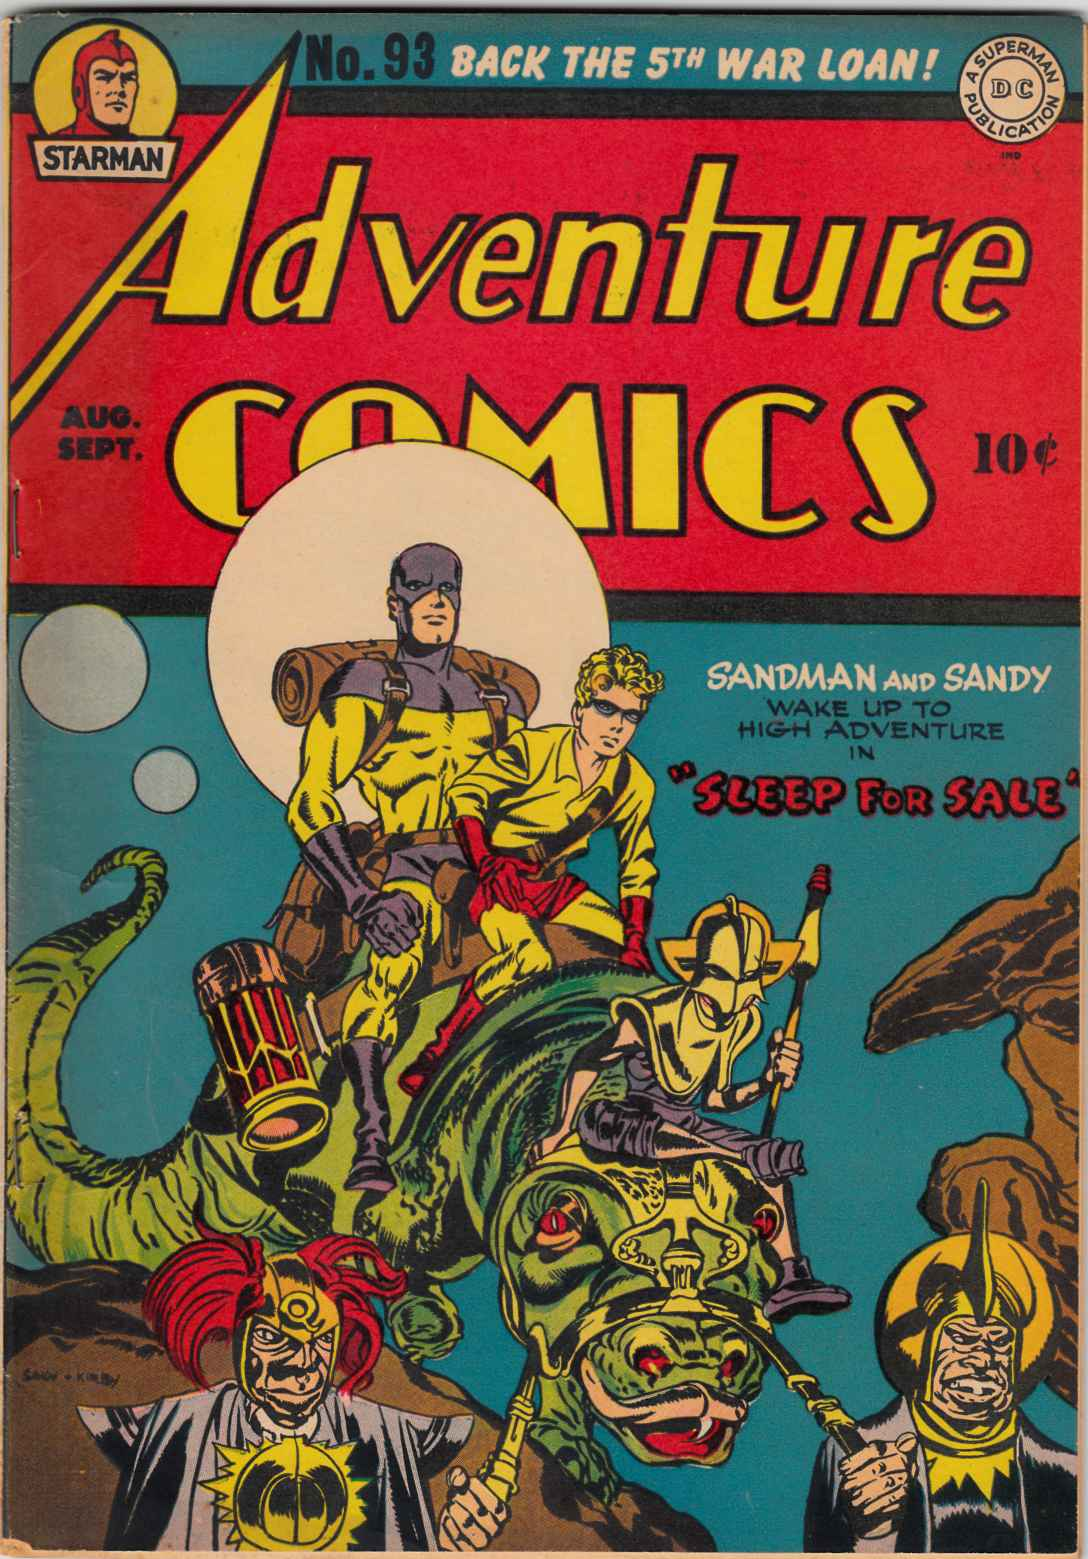 Adventure Comics #93 Fine Plus (6.5) Signed By Jack Kirby [DC Comic]